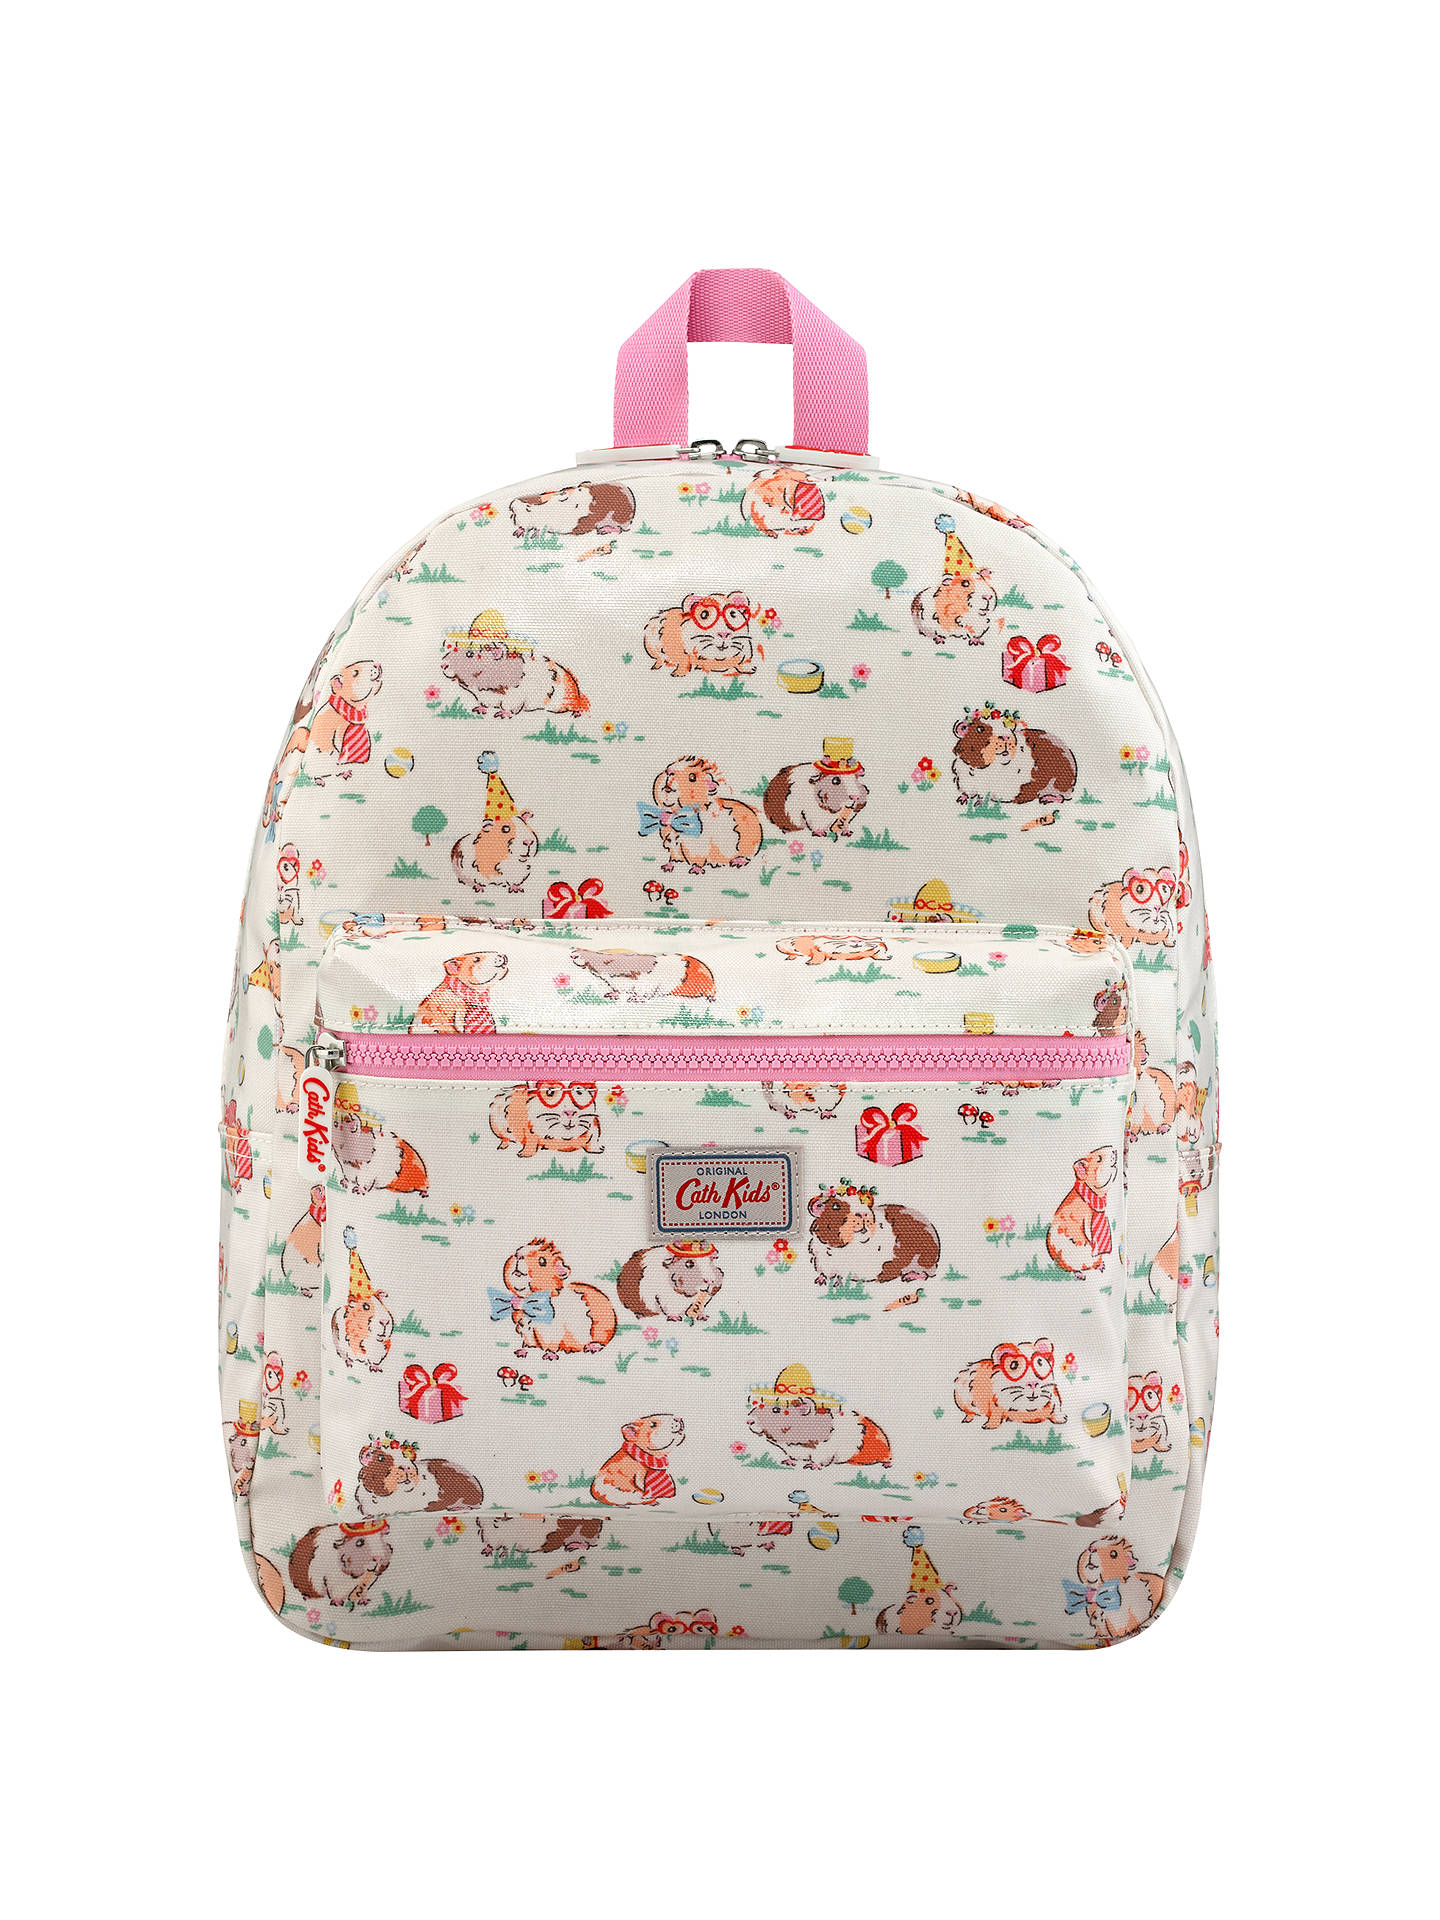 Cath Kids Children S Pets Party Padded Rucksack Cream At John Lewis